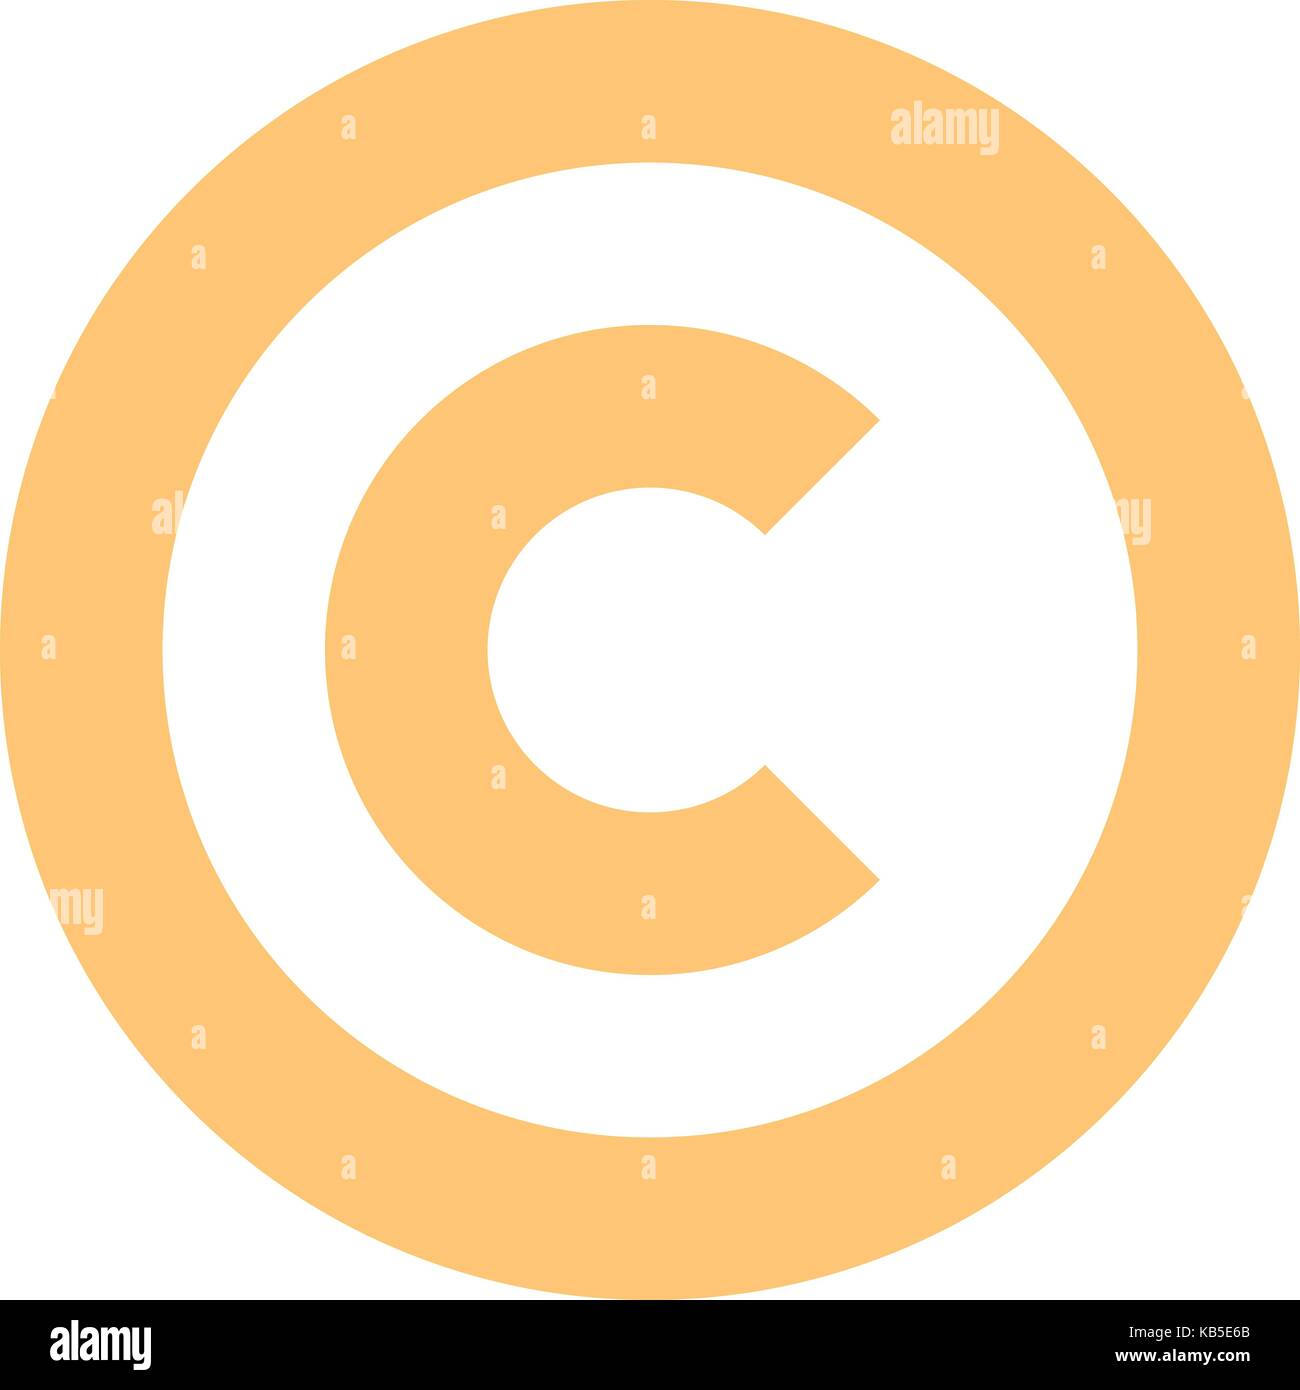 The Copyright Symbol Or Copyright Sign A Circled Capital Letter C